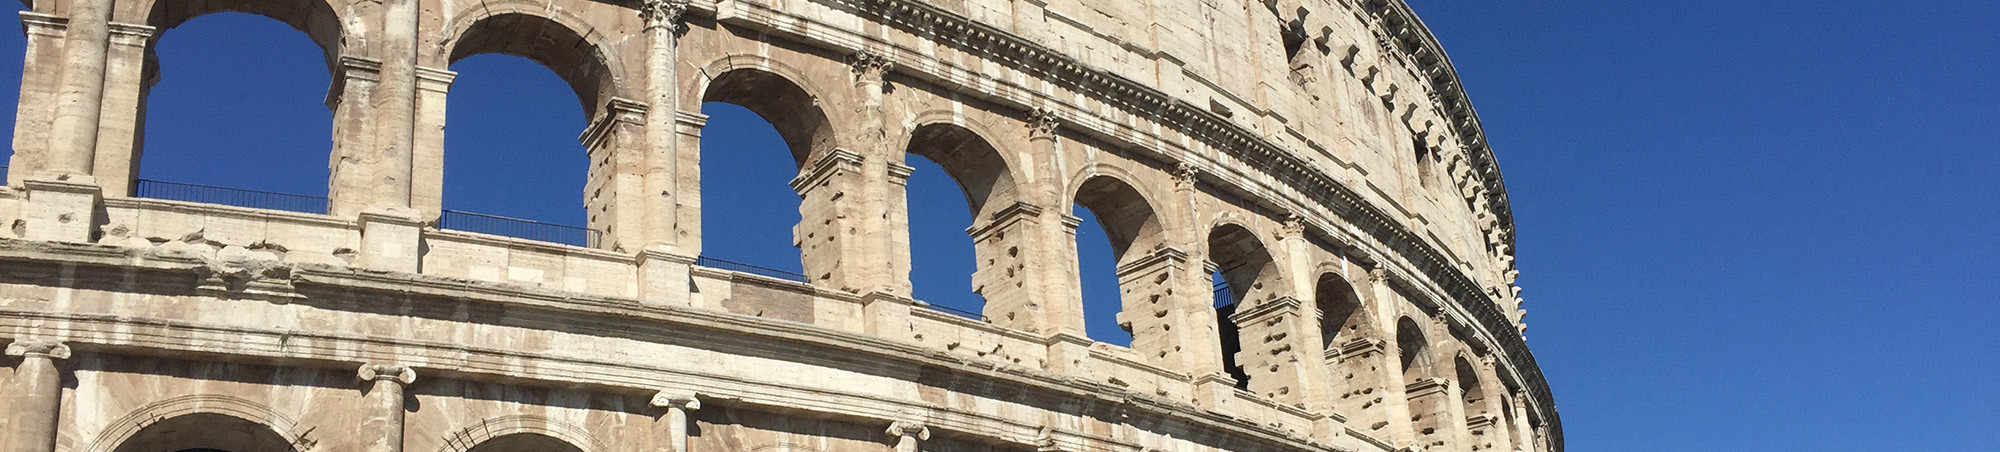 Colosseum Rome Itinerary